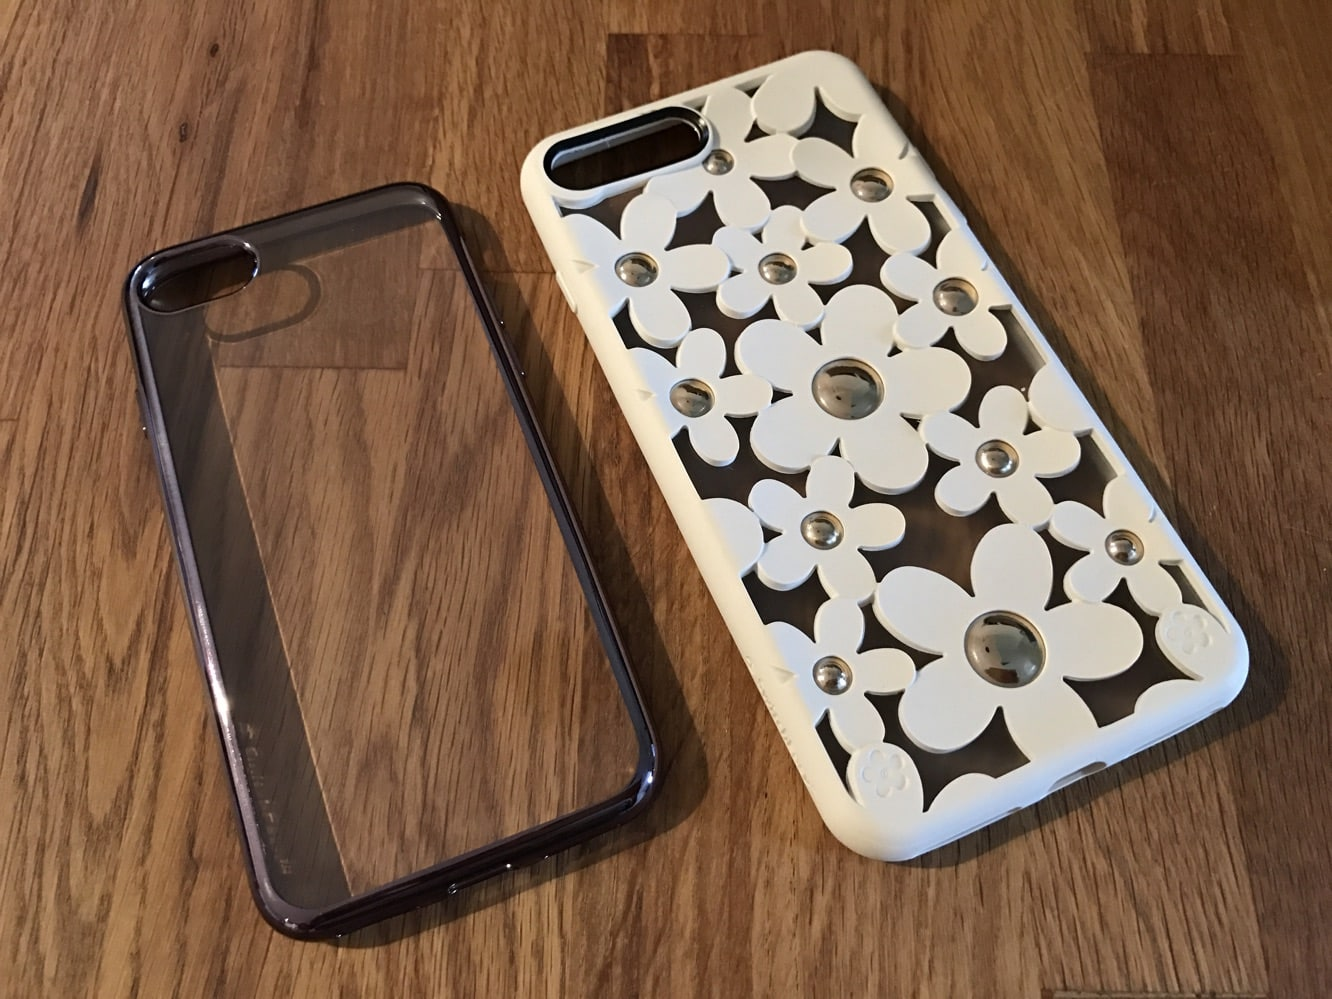 Review: SwitchEasy Flash and Fleur for iPhone 7/7 Plus